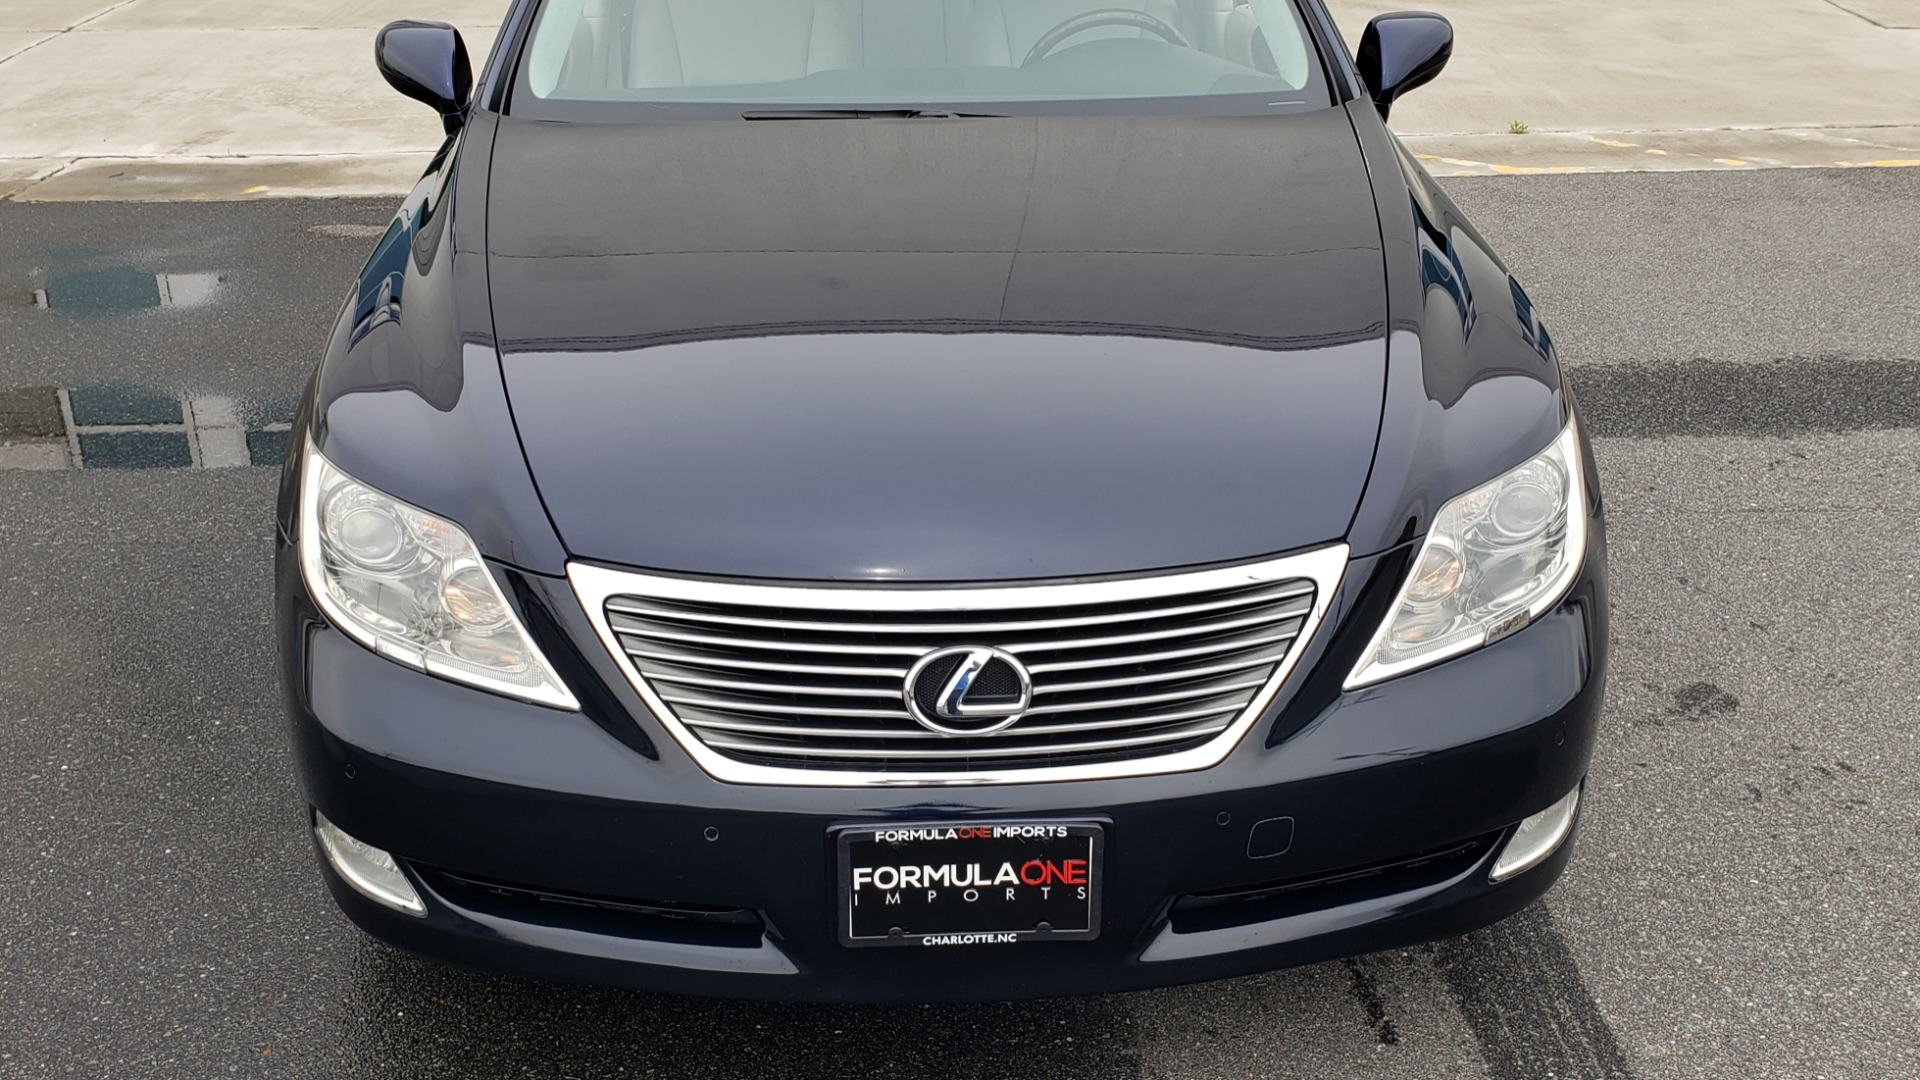 Used 2008 Lexus LS 460 LWB LUXURY SEDAN / MARK LEVINSON / INT PARK ASST / REARVIEW for sale Sold at Formula Imports in Charlotte NC 28227 19